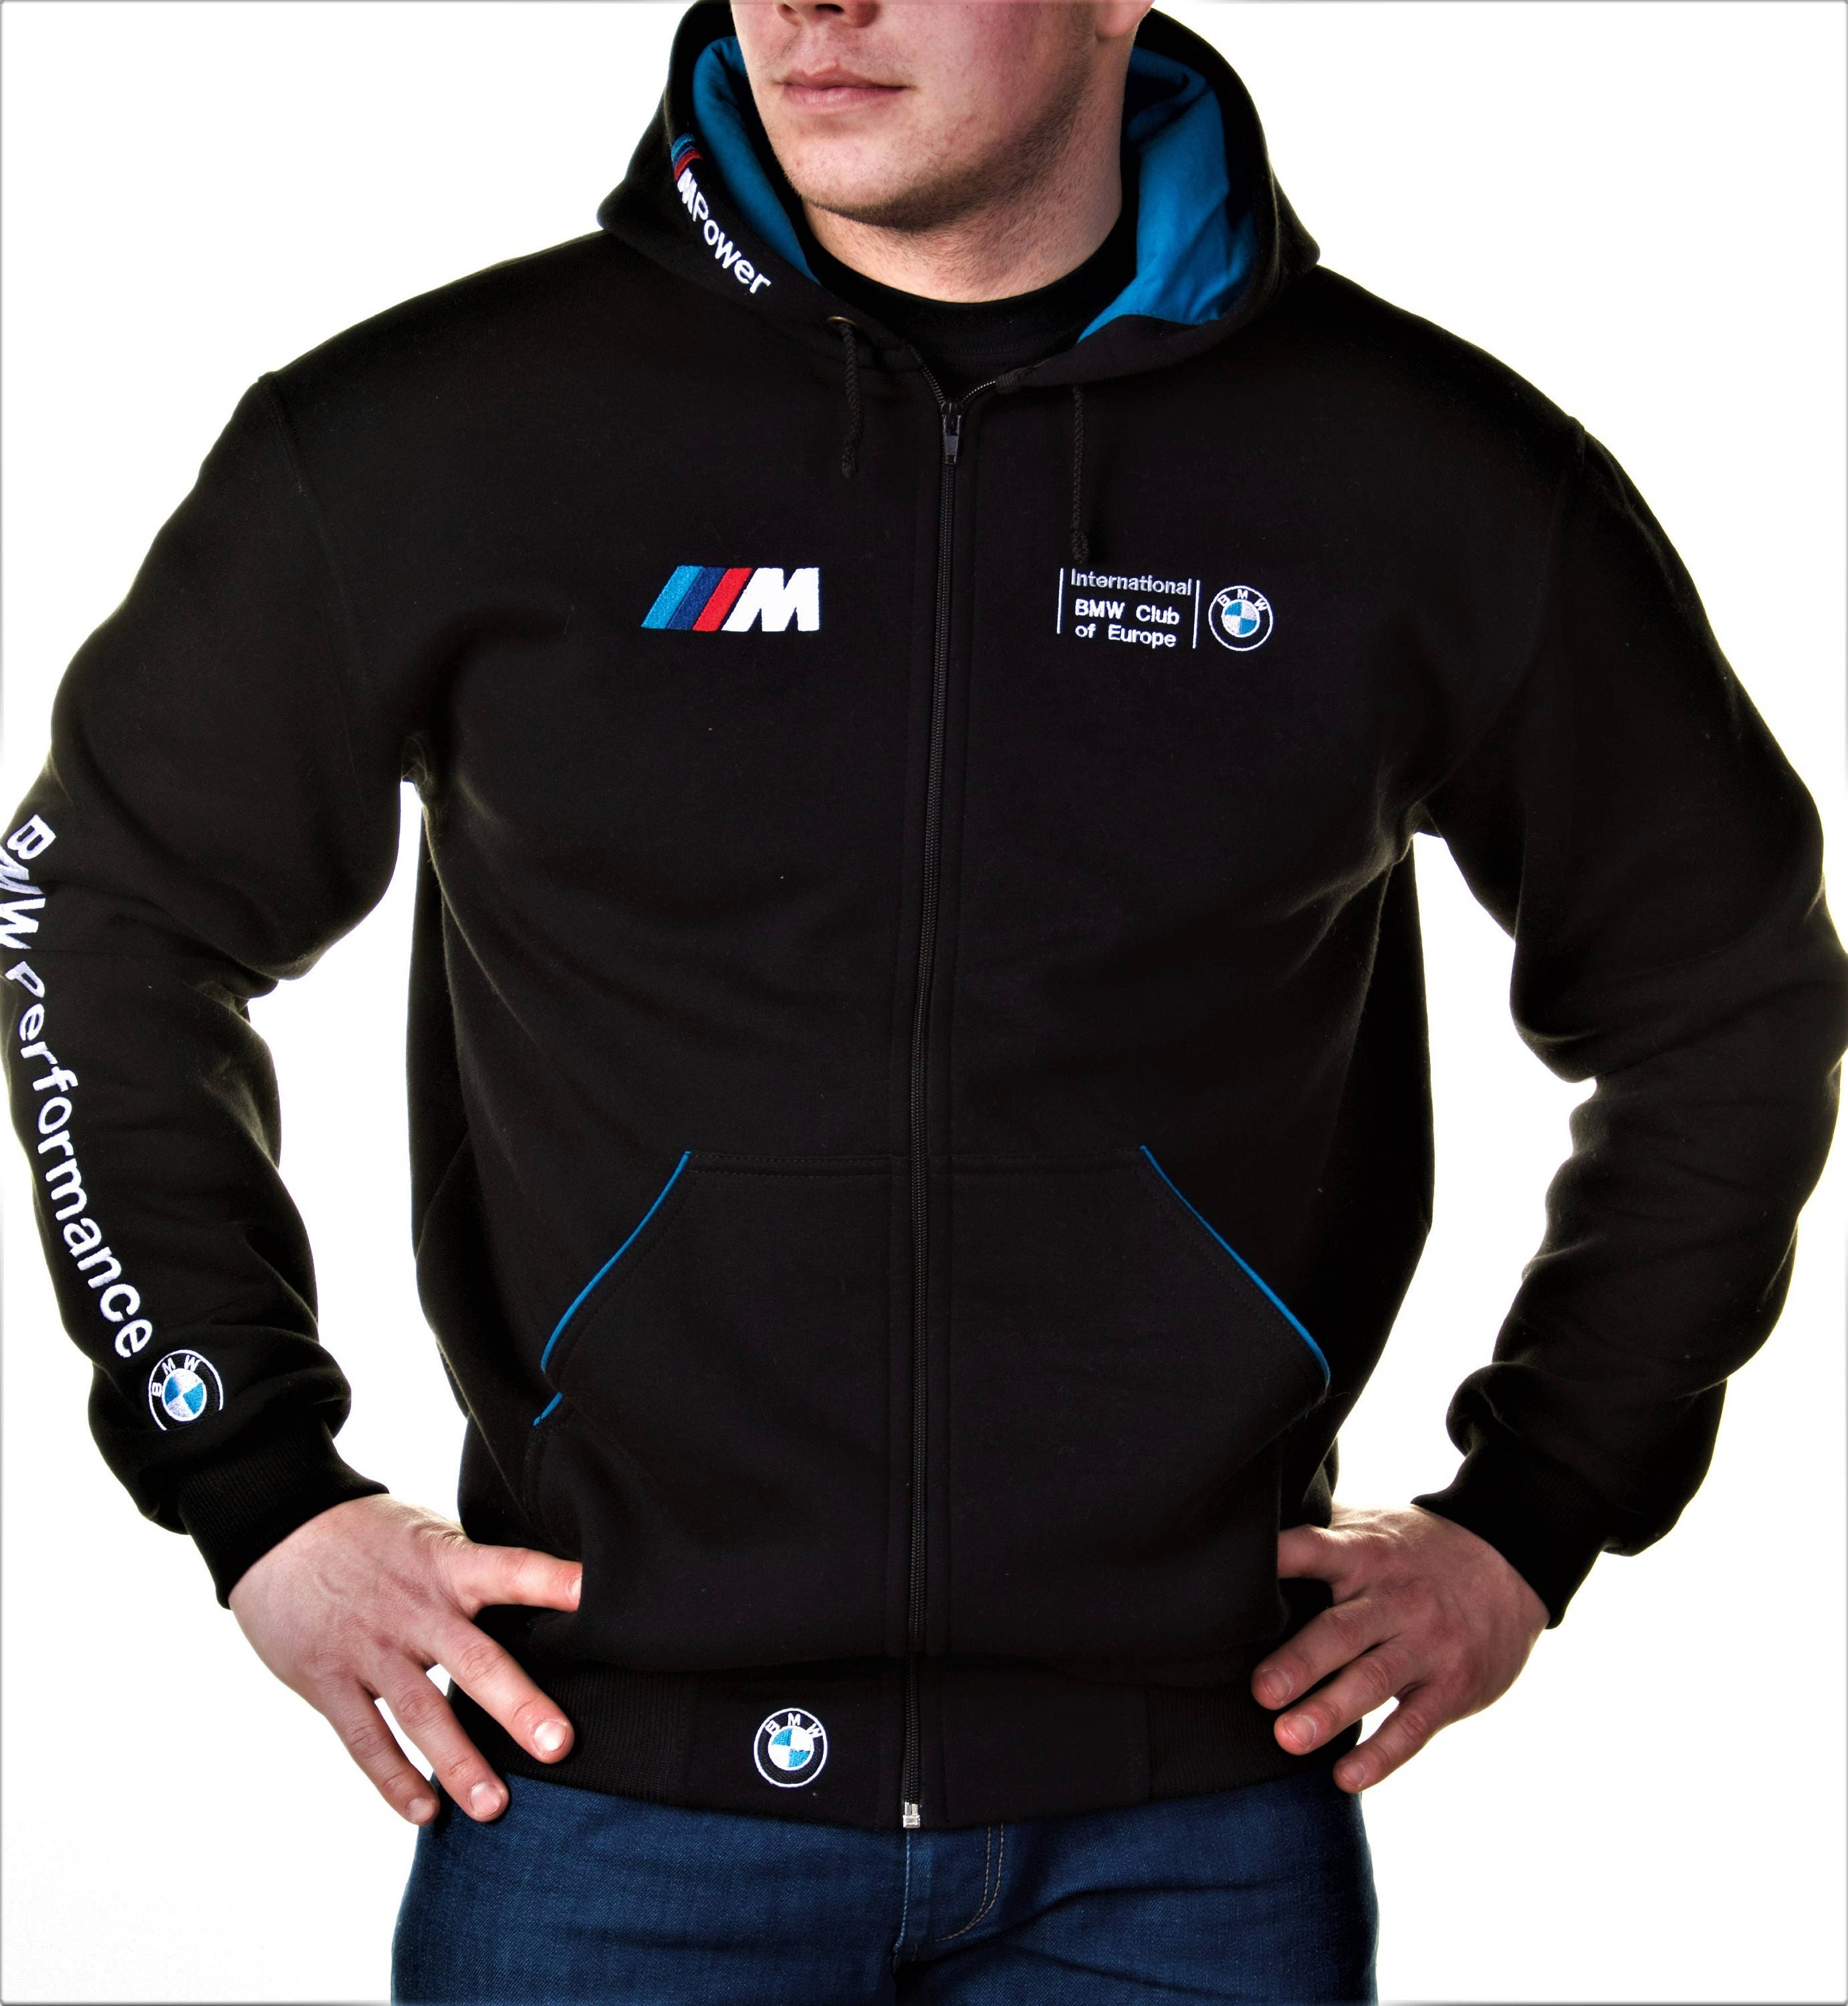 f8b8b134e4 Zip Hoodie BMW, M Power, Motorsport, Embroidery logos, Best offer.